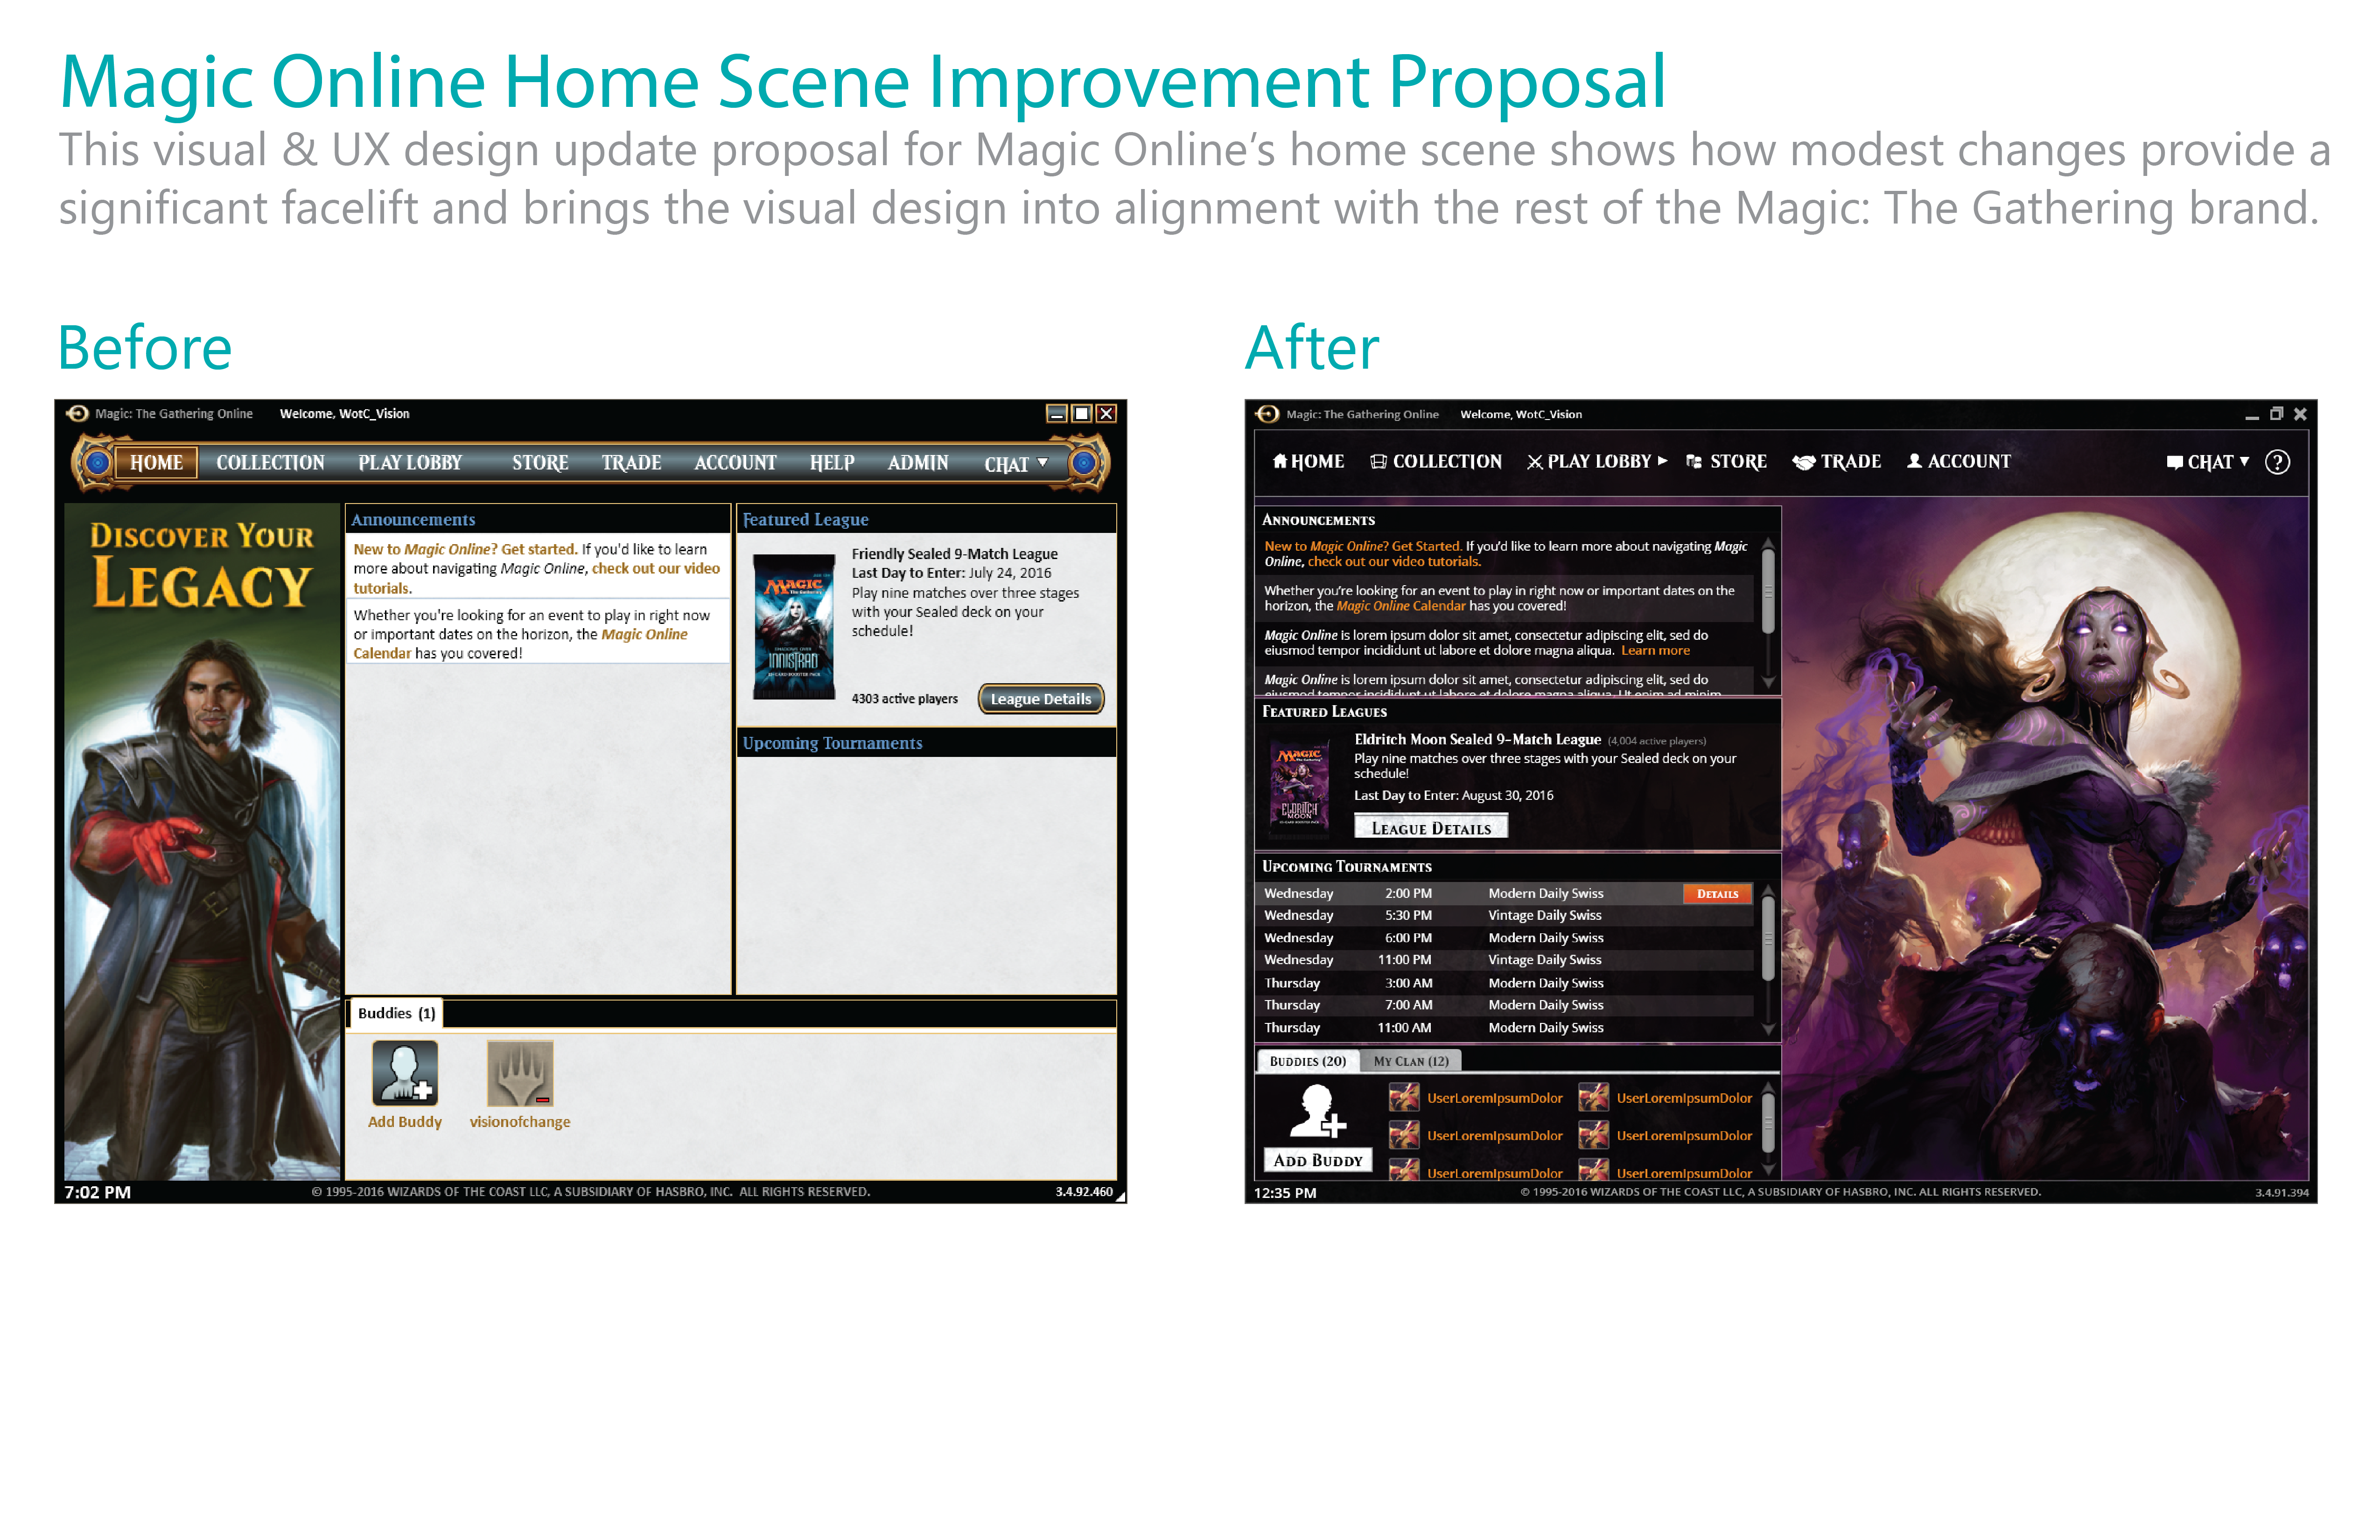 Magic Online Home Scene Improvement Proposal